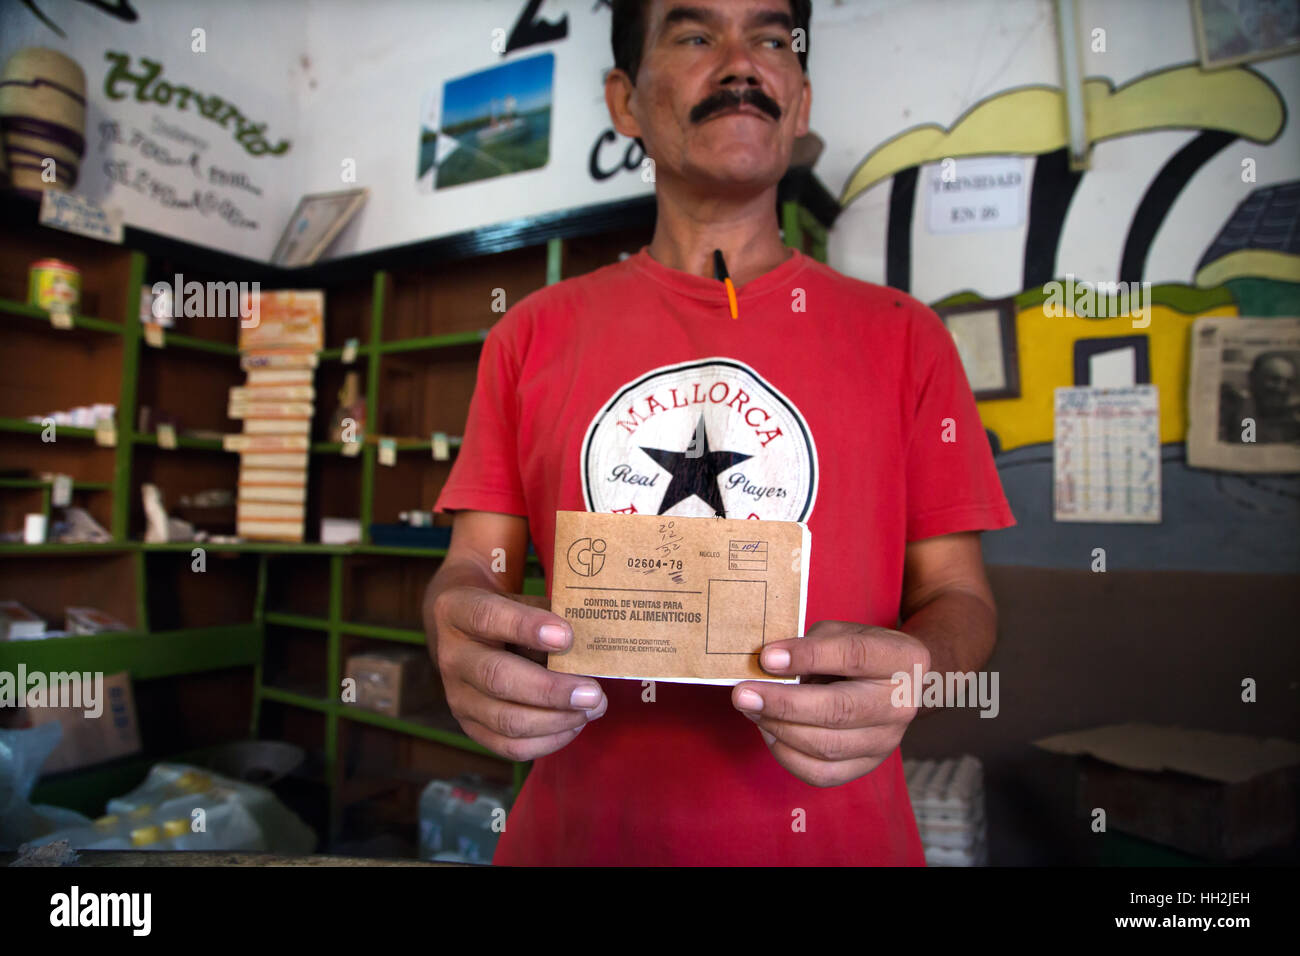 A man is showing a «Libreta de Abastecimiento» («Supplies booklet») in a grocery store in Trinidad. - Stock Image